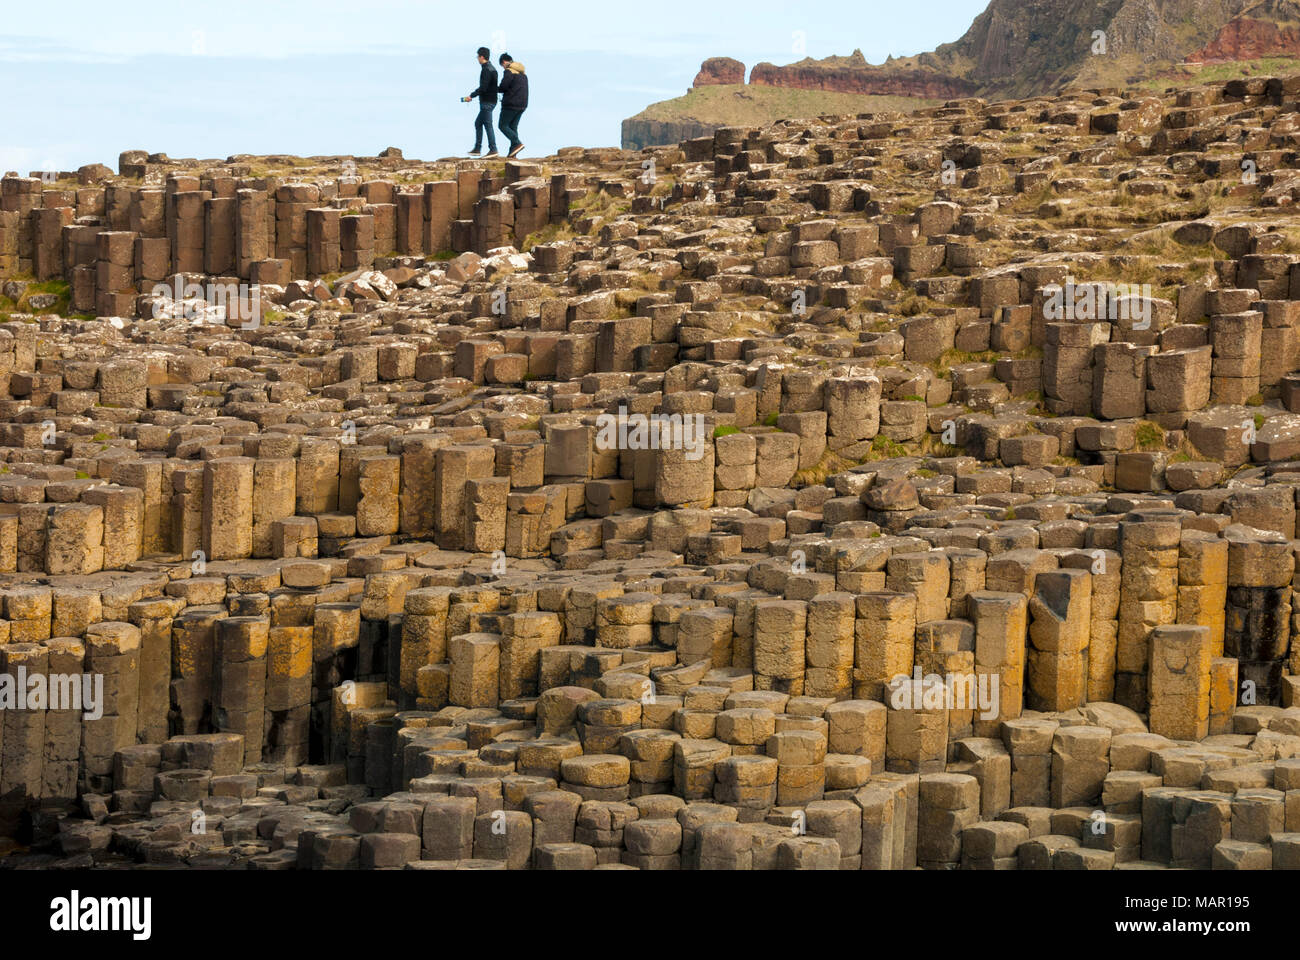 Columnar basalt lava at Giant's Causeway, UNESCO World Heritage Site, County Antrim, Northern Ireland, United Kingdom, Europe - Stock Image